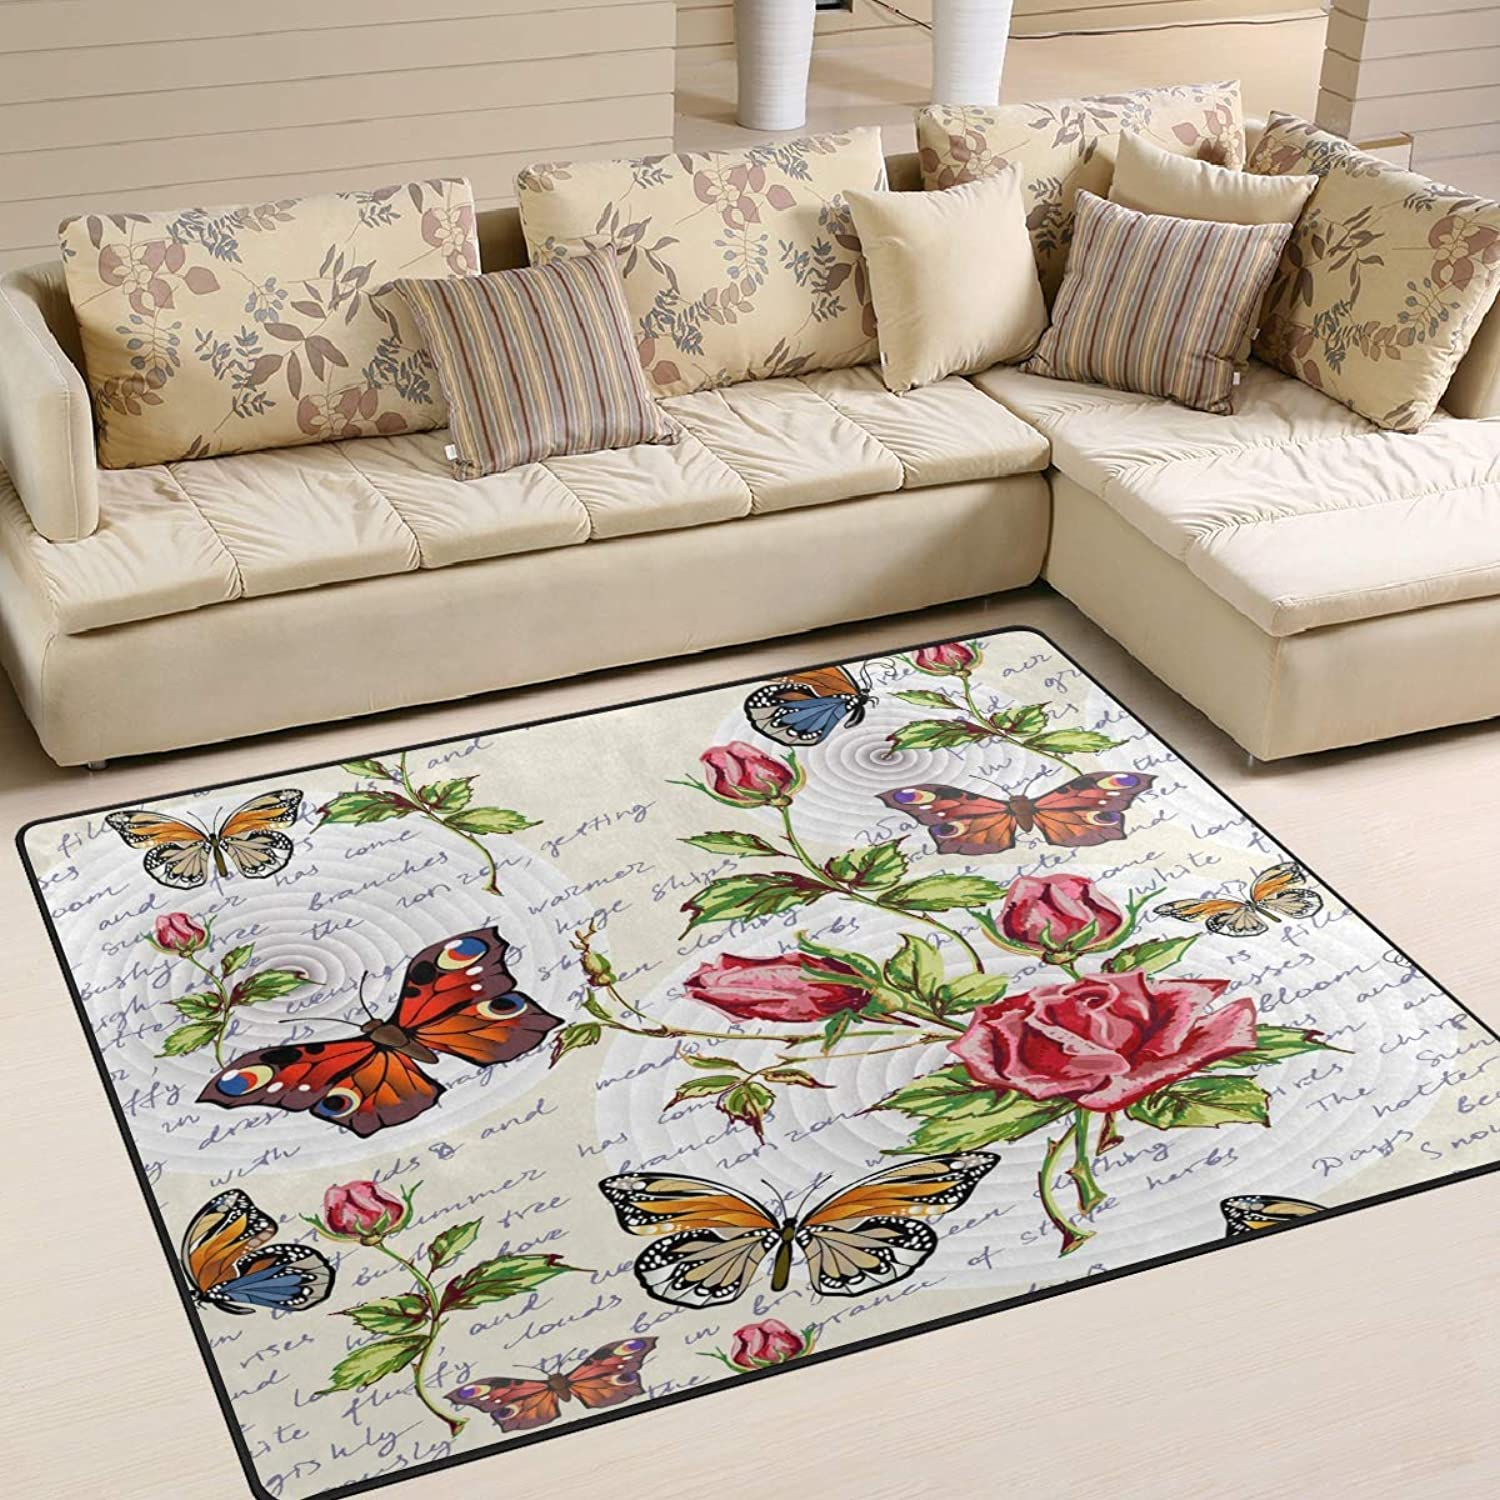 Vintage Flower Print Flower Butterfly Area Rug Floor Mat Rug Indoor Front Door Kitchen and Living Room Bedroom Mats Rubber Non Slip